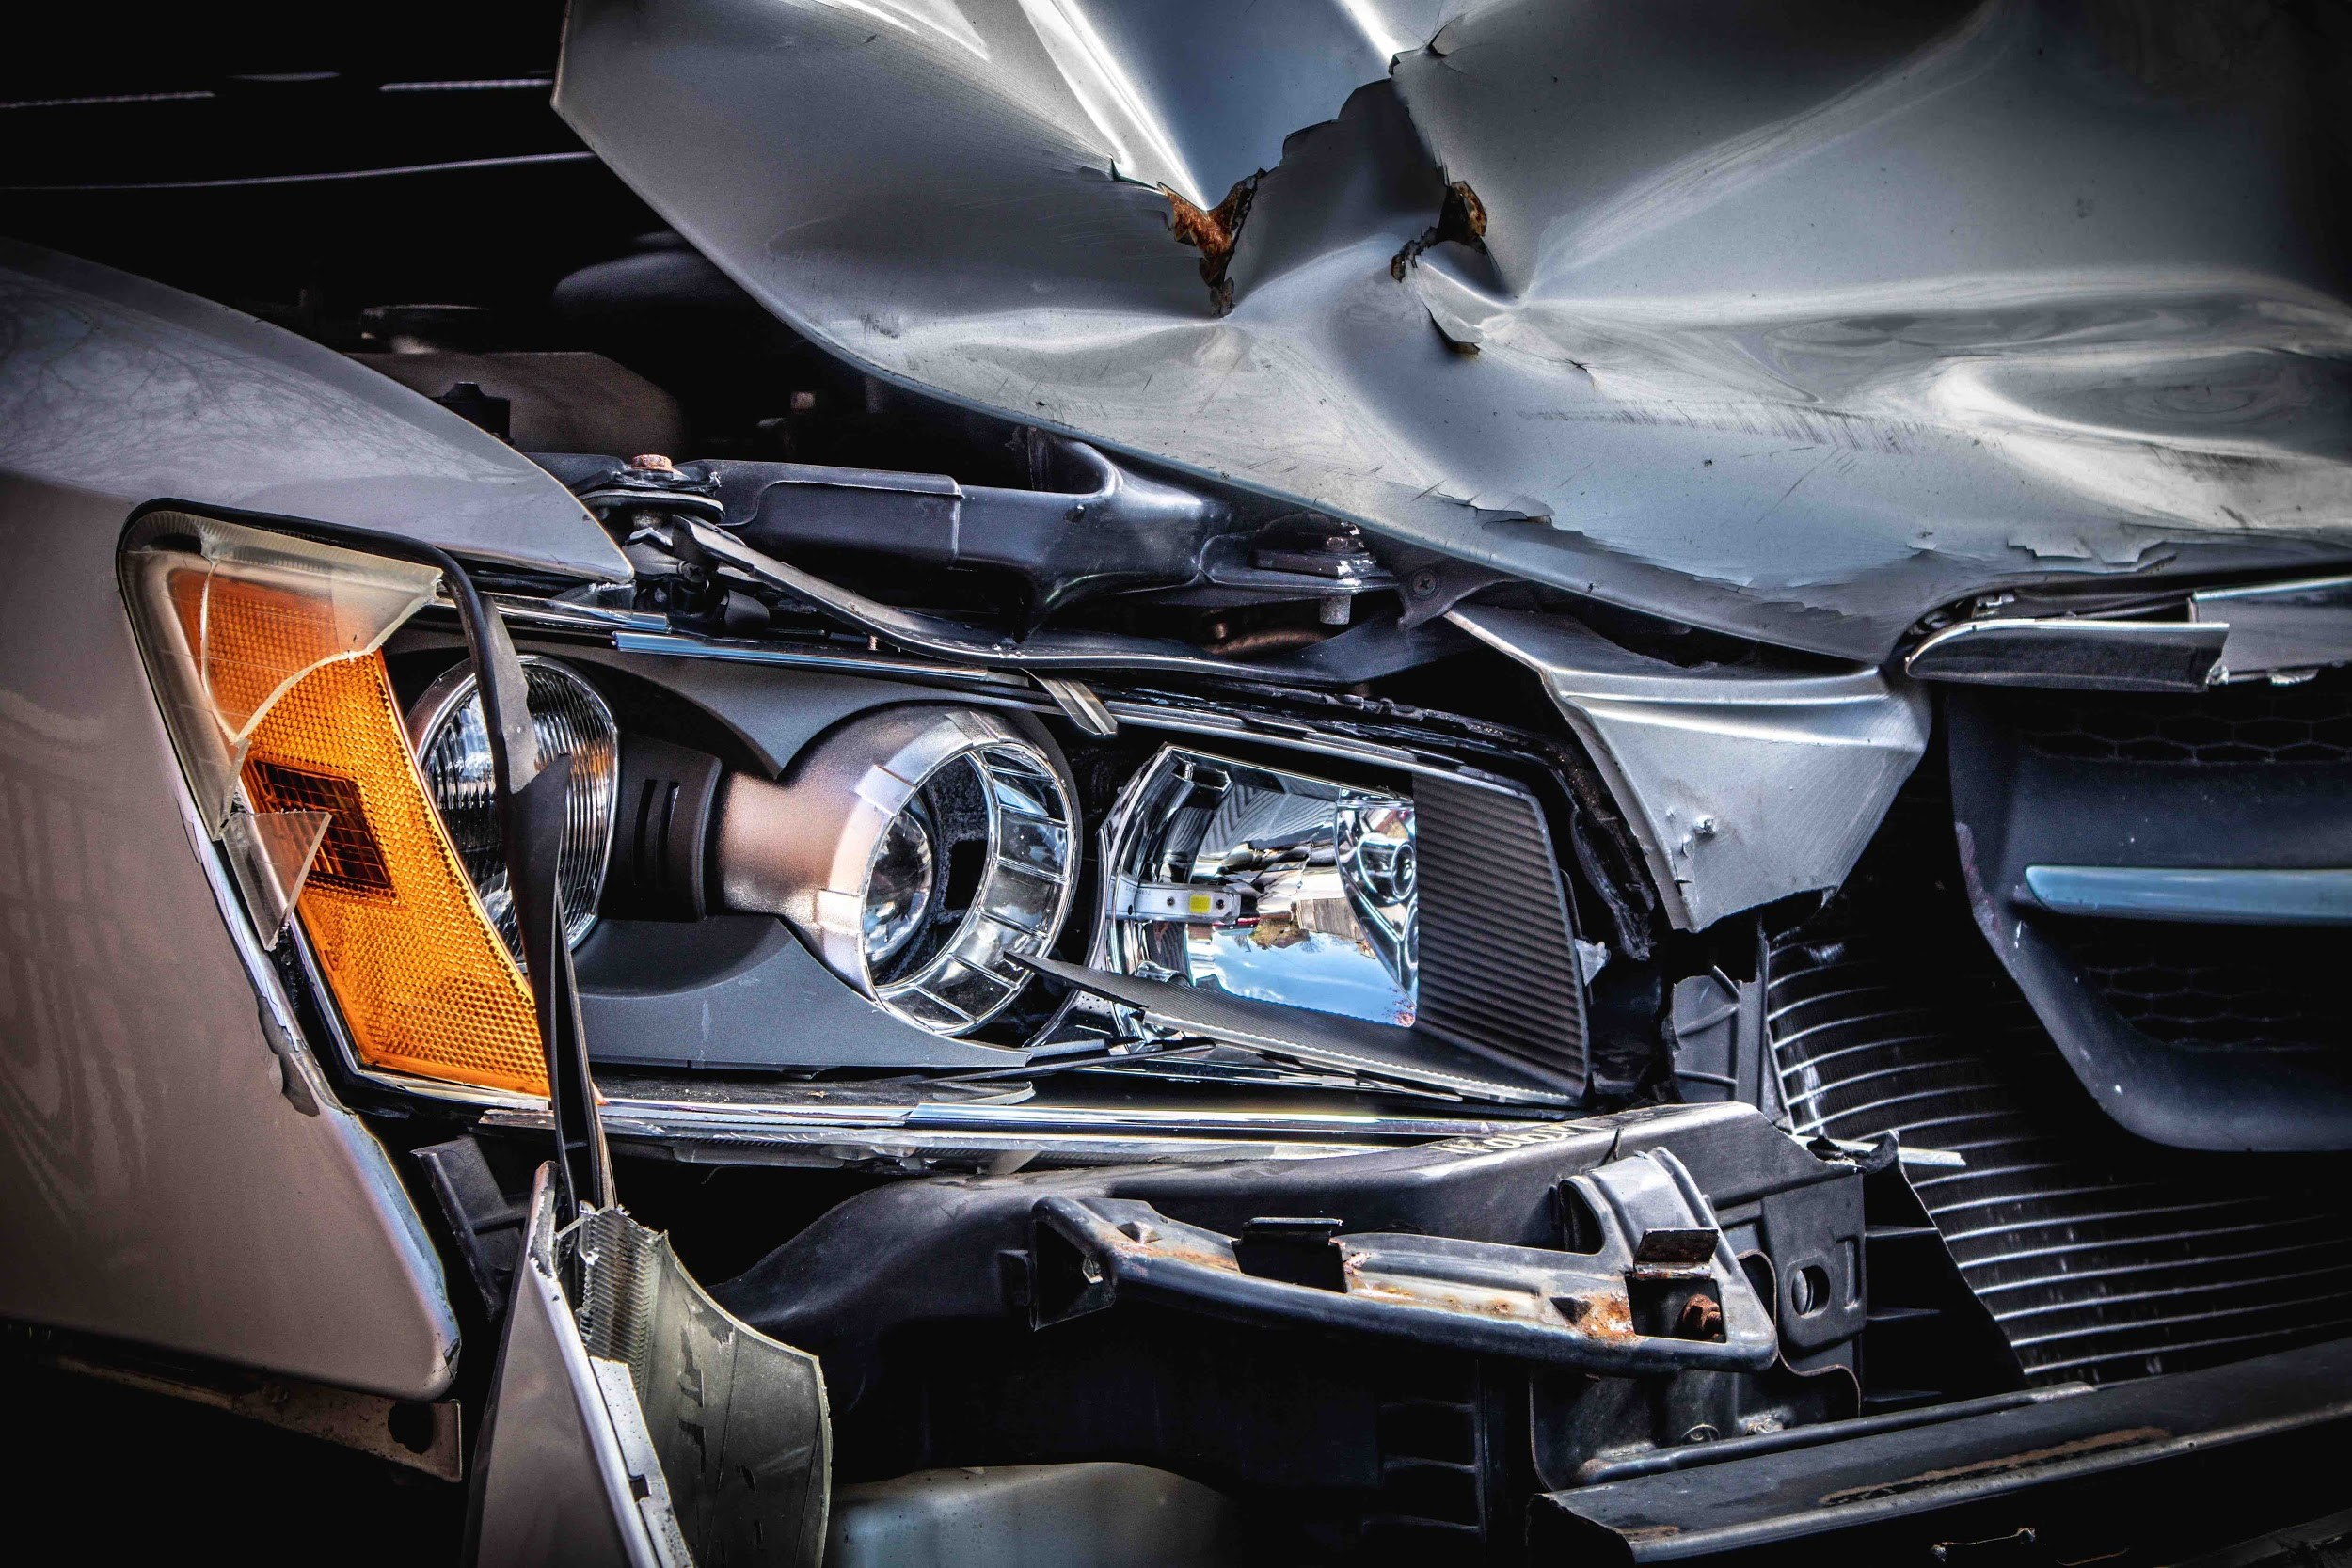 Personal Injury Lawsuit: How do I Prove Fault?